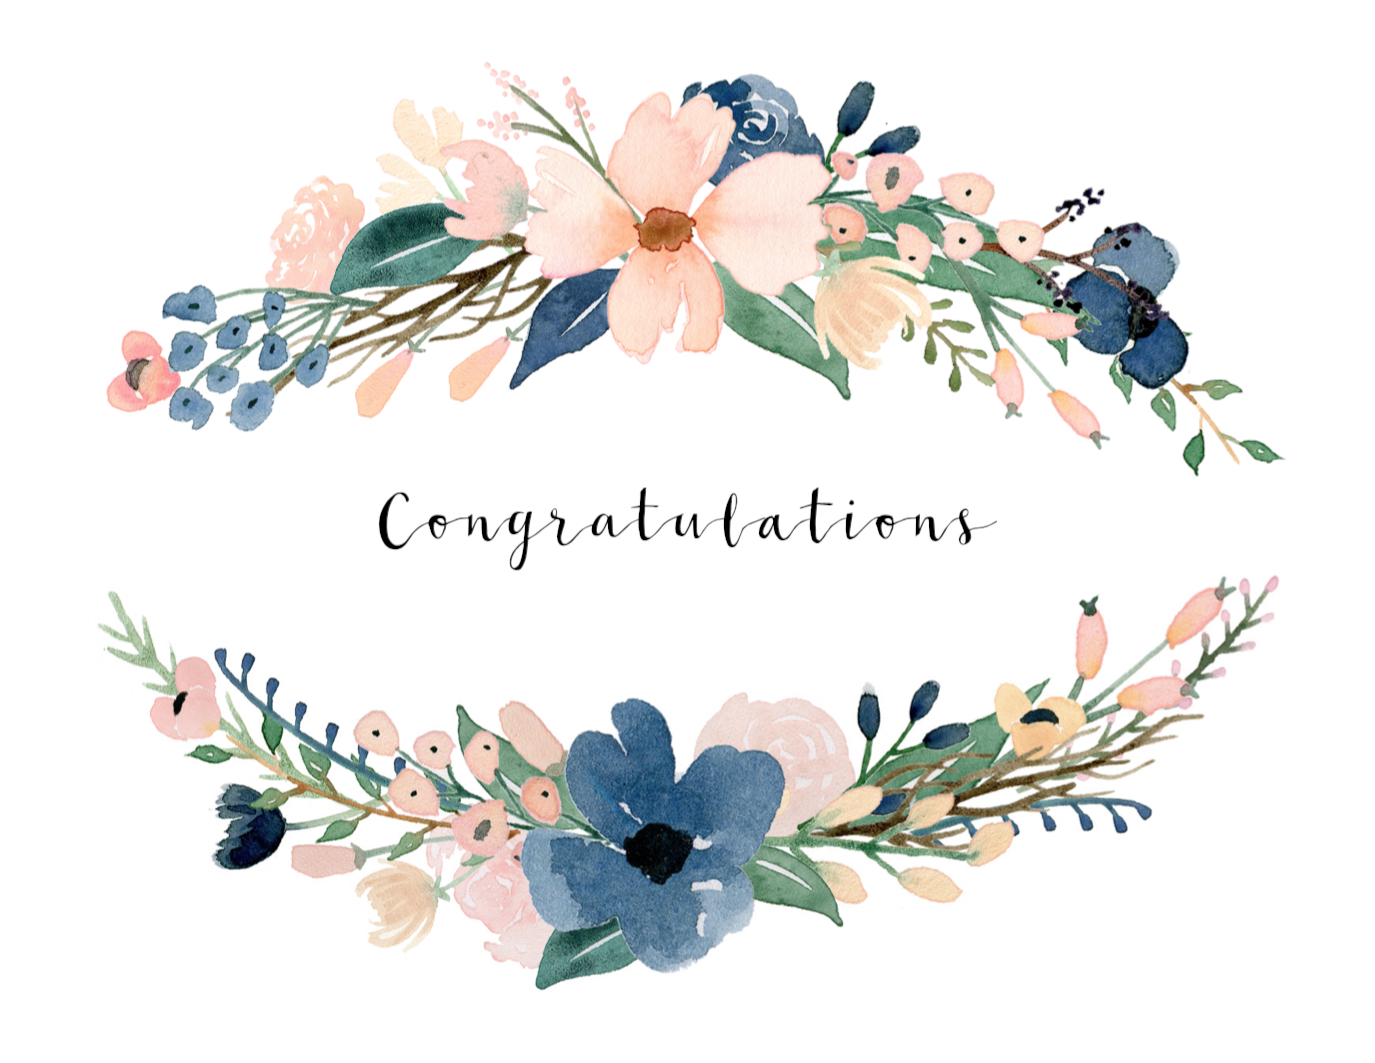 Congratulations card yelomdiffusion congratulations card printable free printable greeting cards m4hsunfo